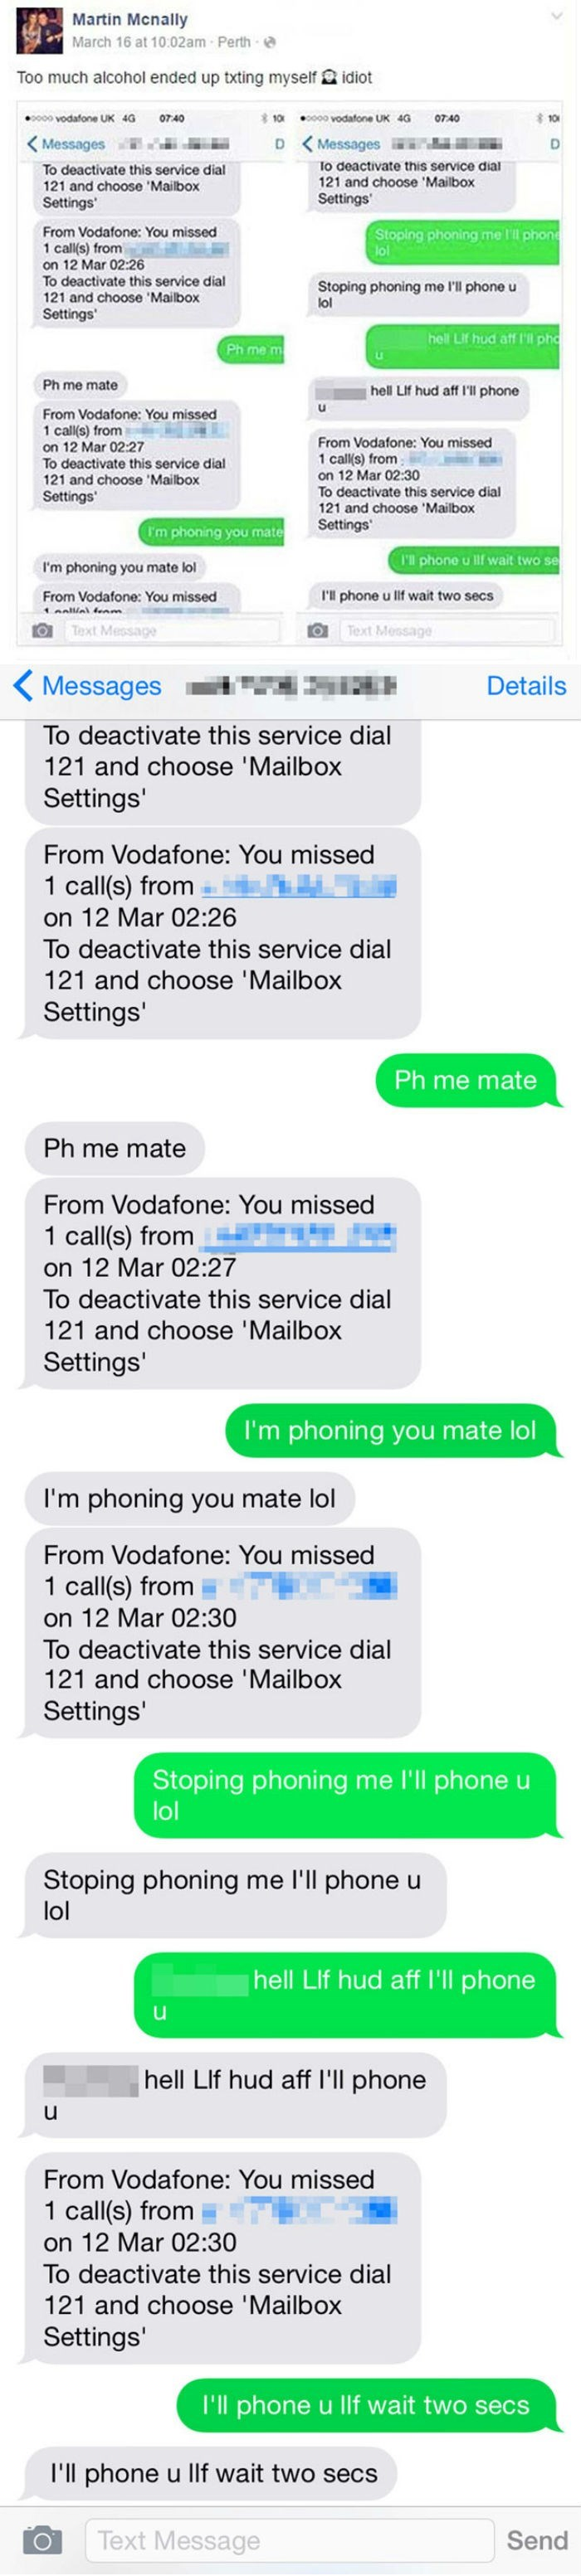 funny fail image drunk bro argues with himself all night via text